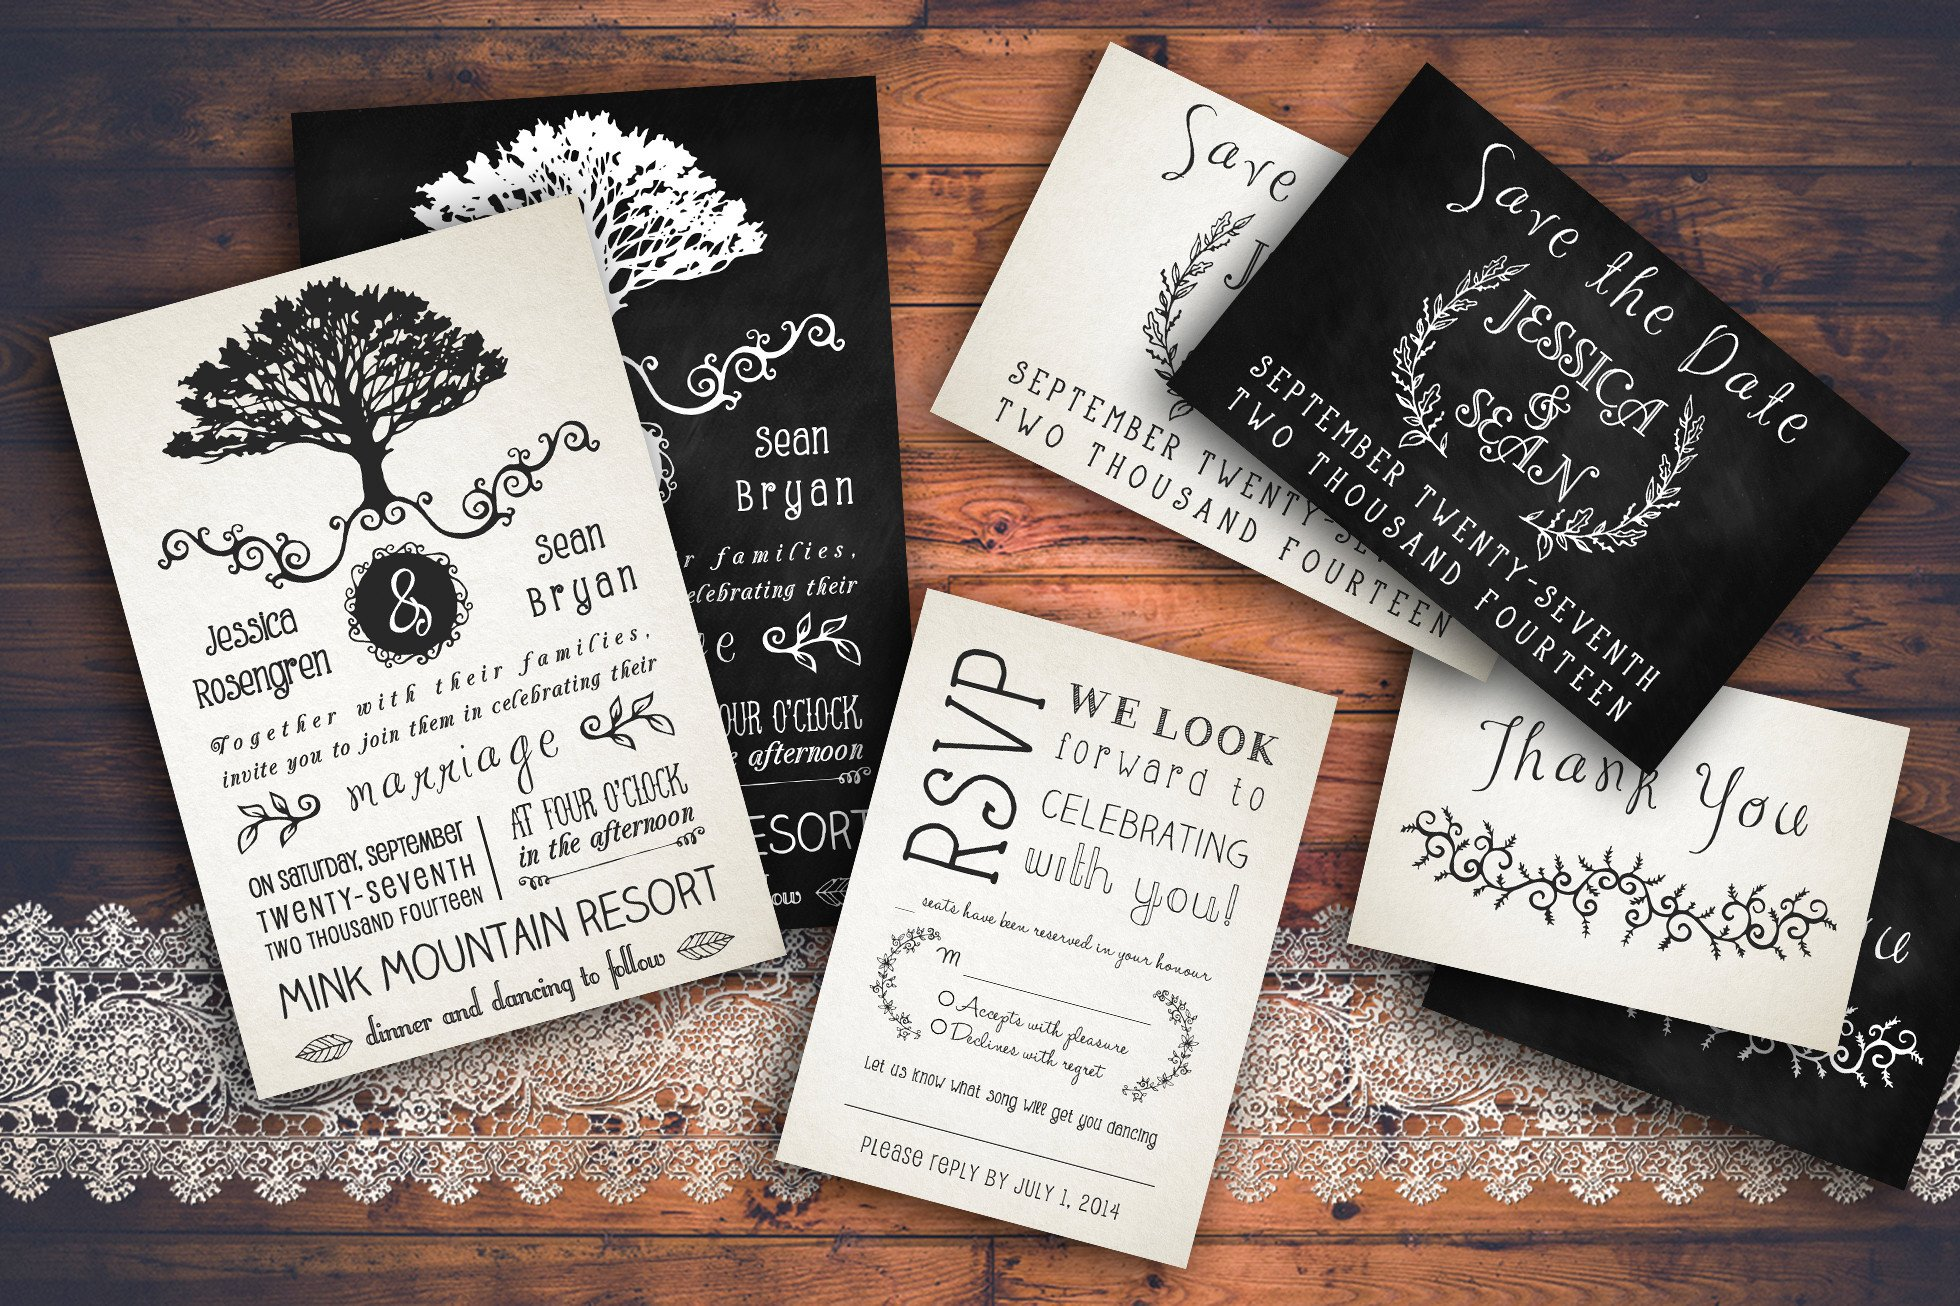 Free Rustic Wedding Invitation Templates Rustic Wedding Invitation Pack Invitation Templates On